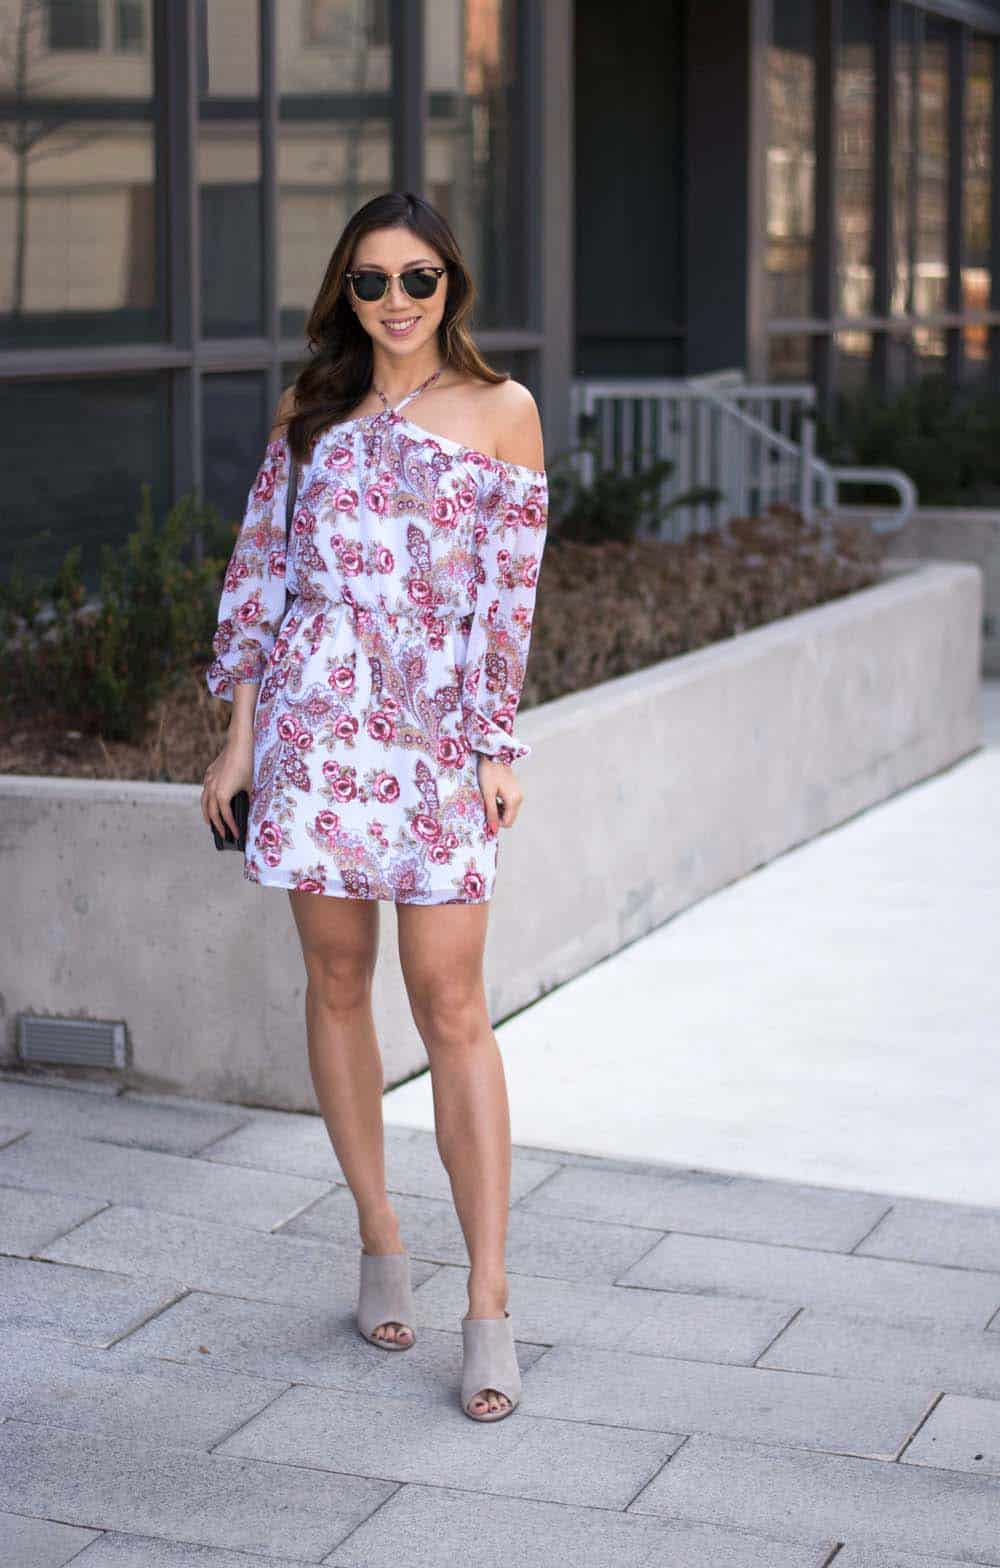 Street Style: floral cold-shoulder dress with grey mules, and Kendall + Kylie bag